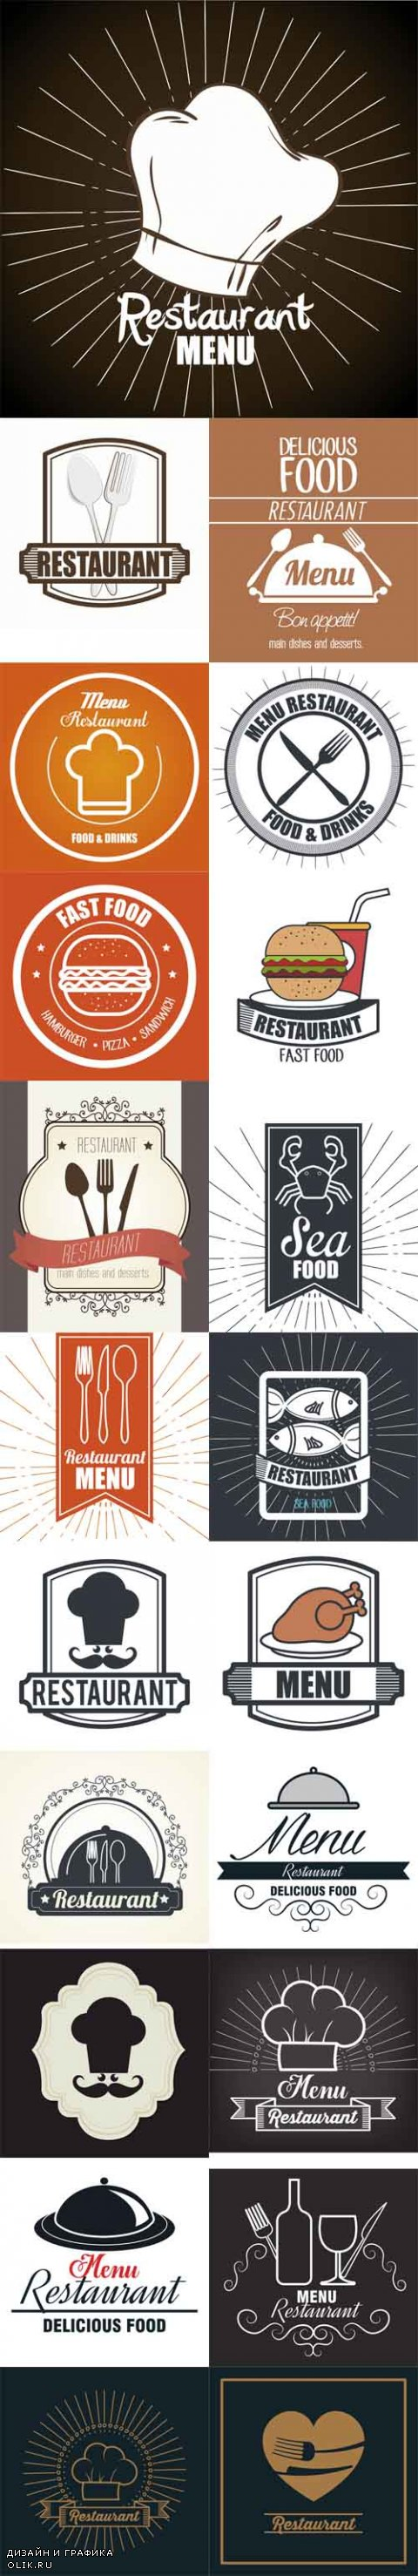 Vector Menu Restaurant Cover Icon Illustration Graphic